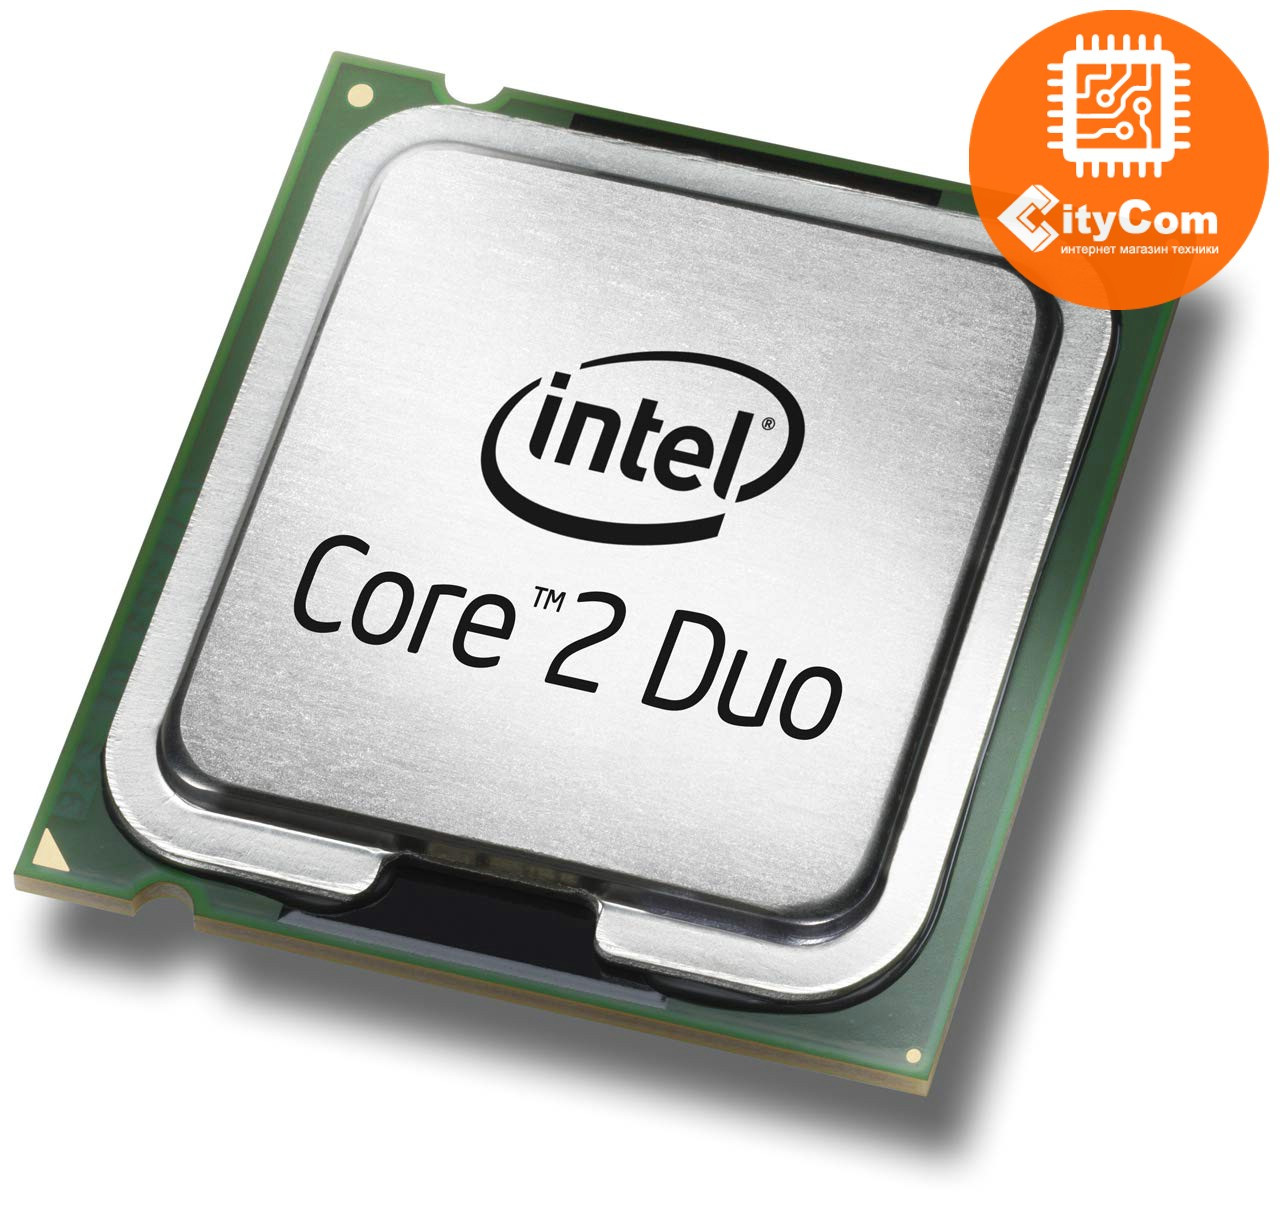 CPU S-775 Intel Core2Duo E8200 2.66 GHz (6MB, 1333 MHz, LGA775) oem